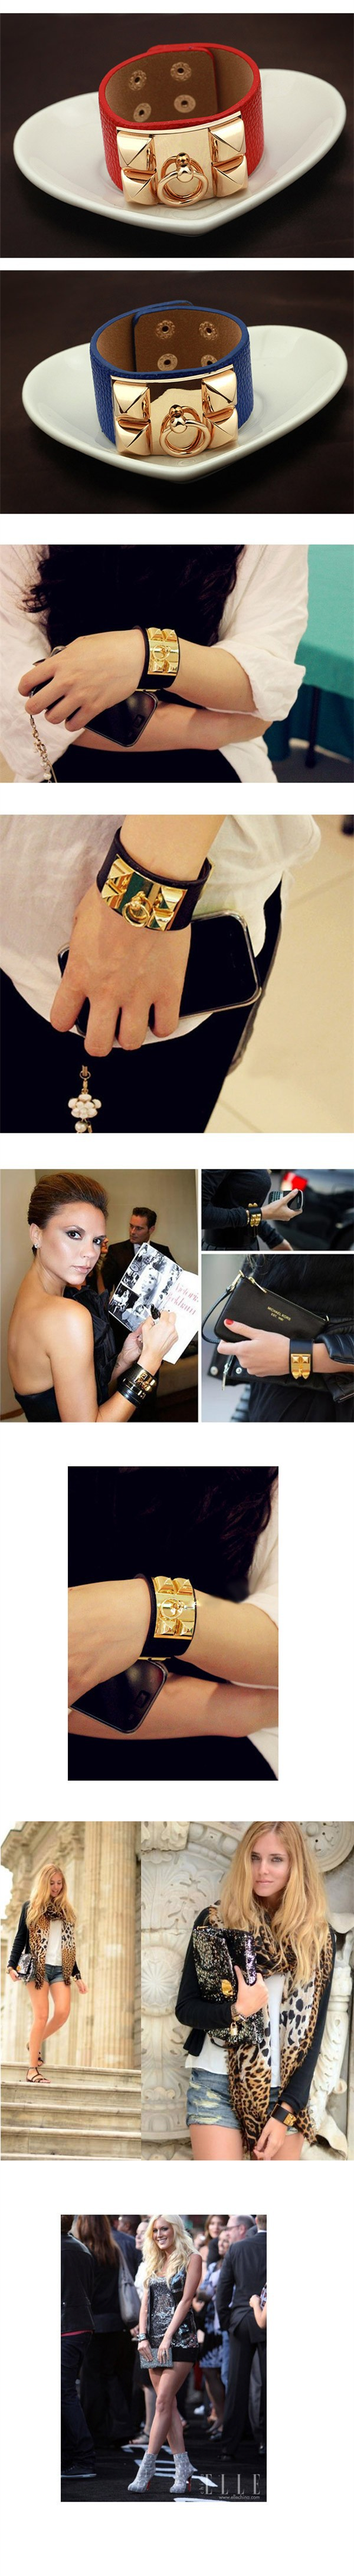 Браслет KPOP Style Statement Jewelry For Women And Men Super Wide Leather With Gold Plated Bracelets & Bangles SBR140121